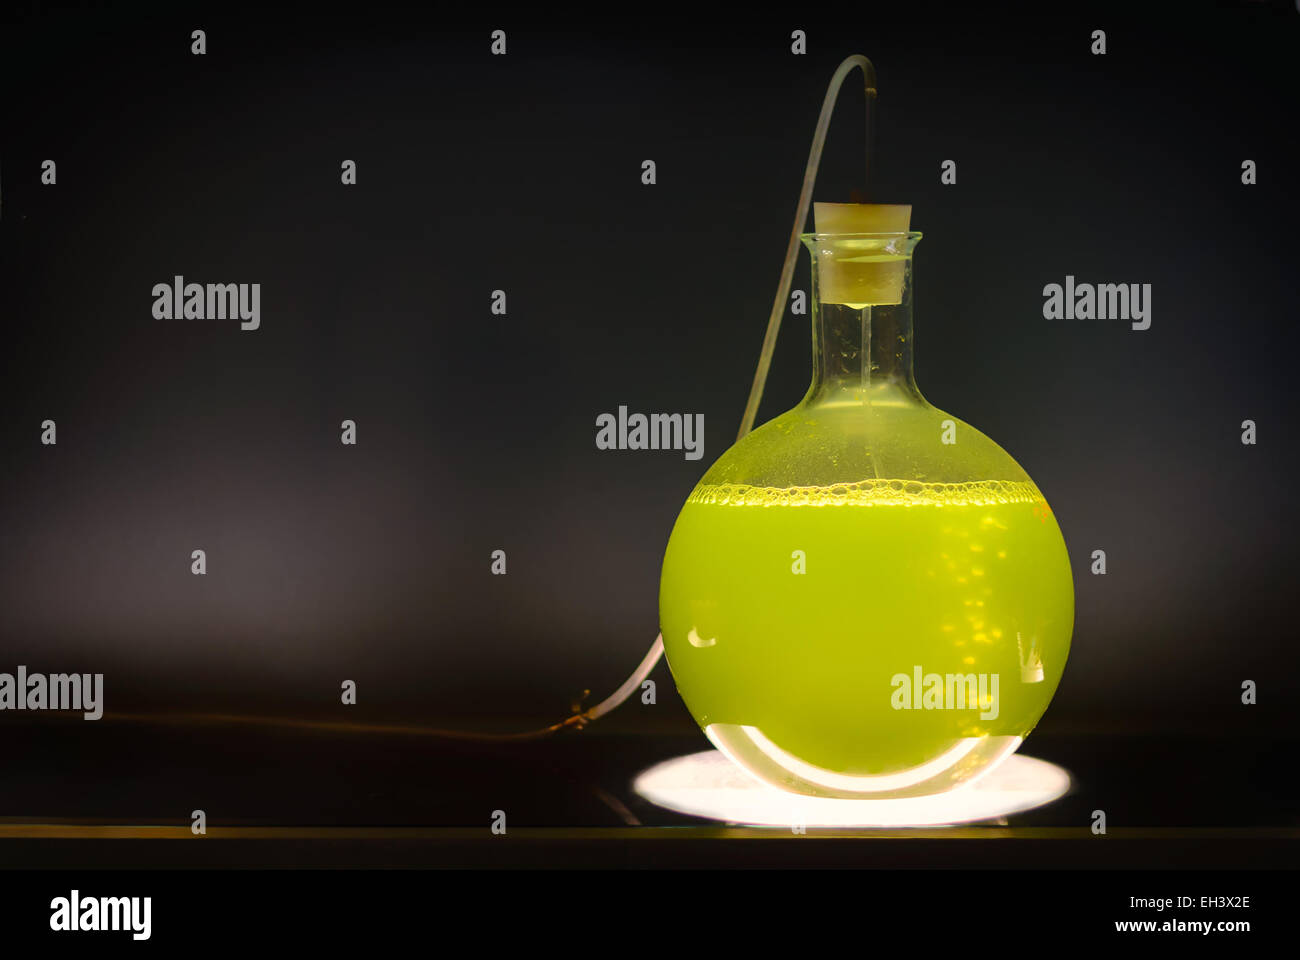 Volumetric flask with green liquid in experiment in dark room laboratory, chemical reaction, distillation. - Stock Image